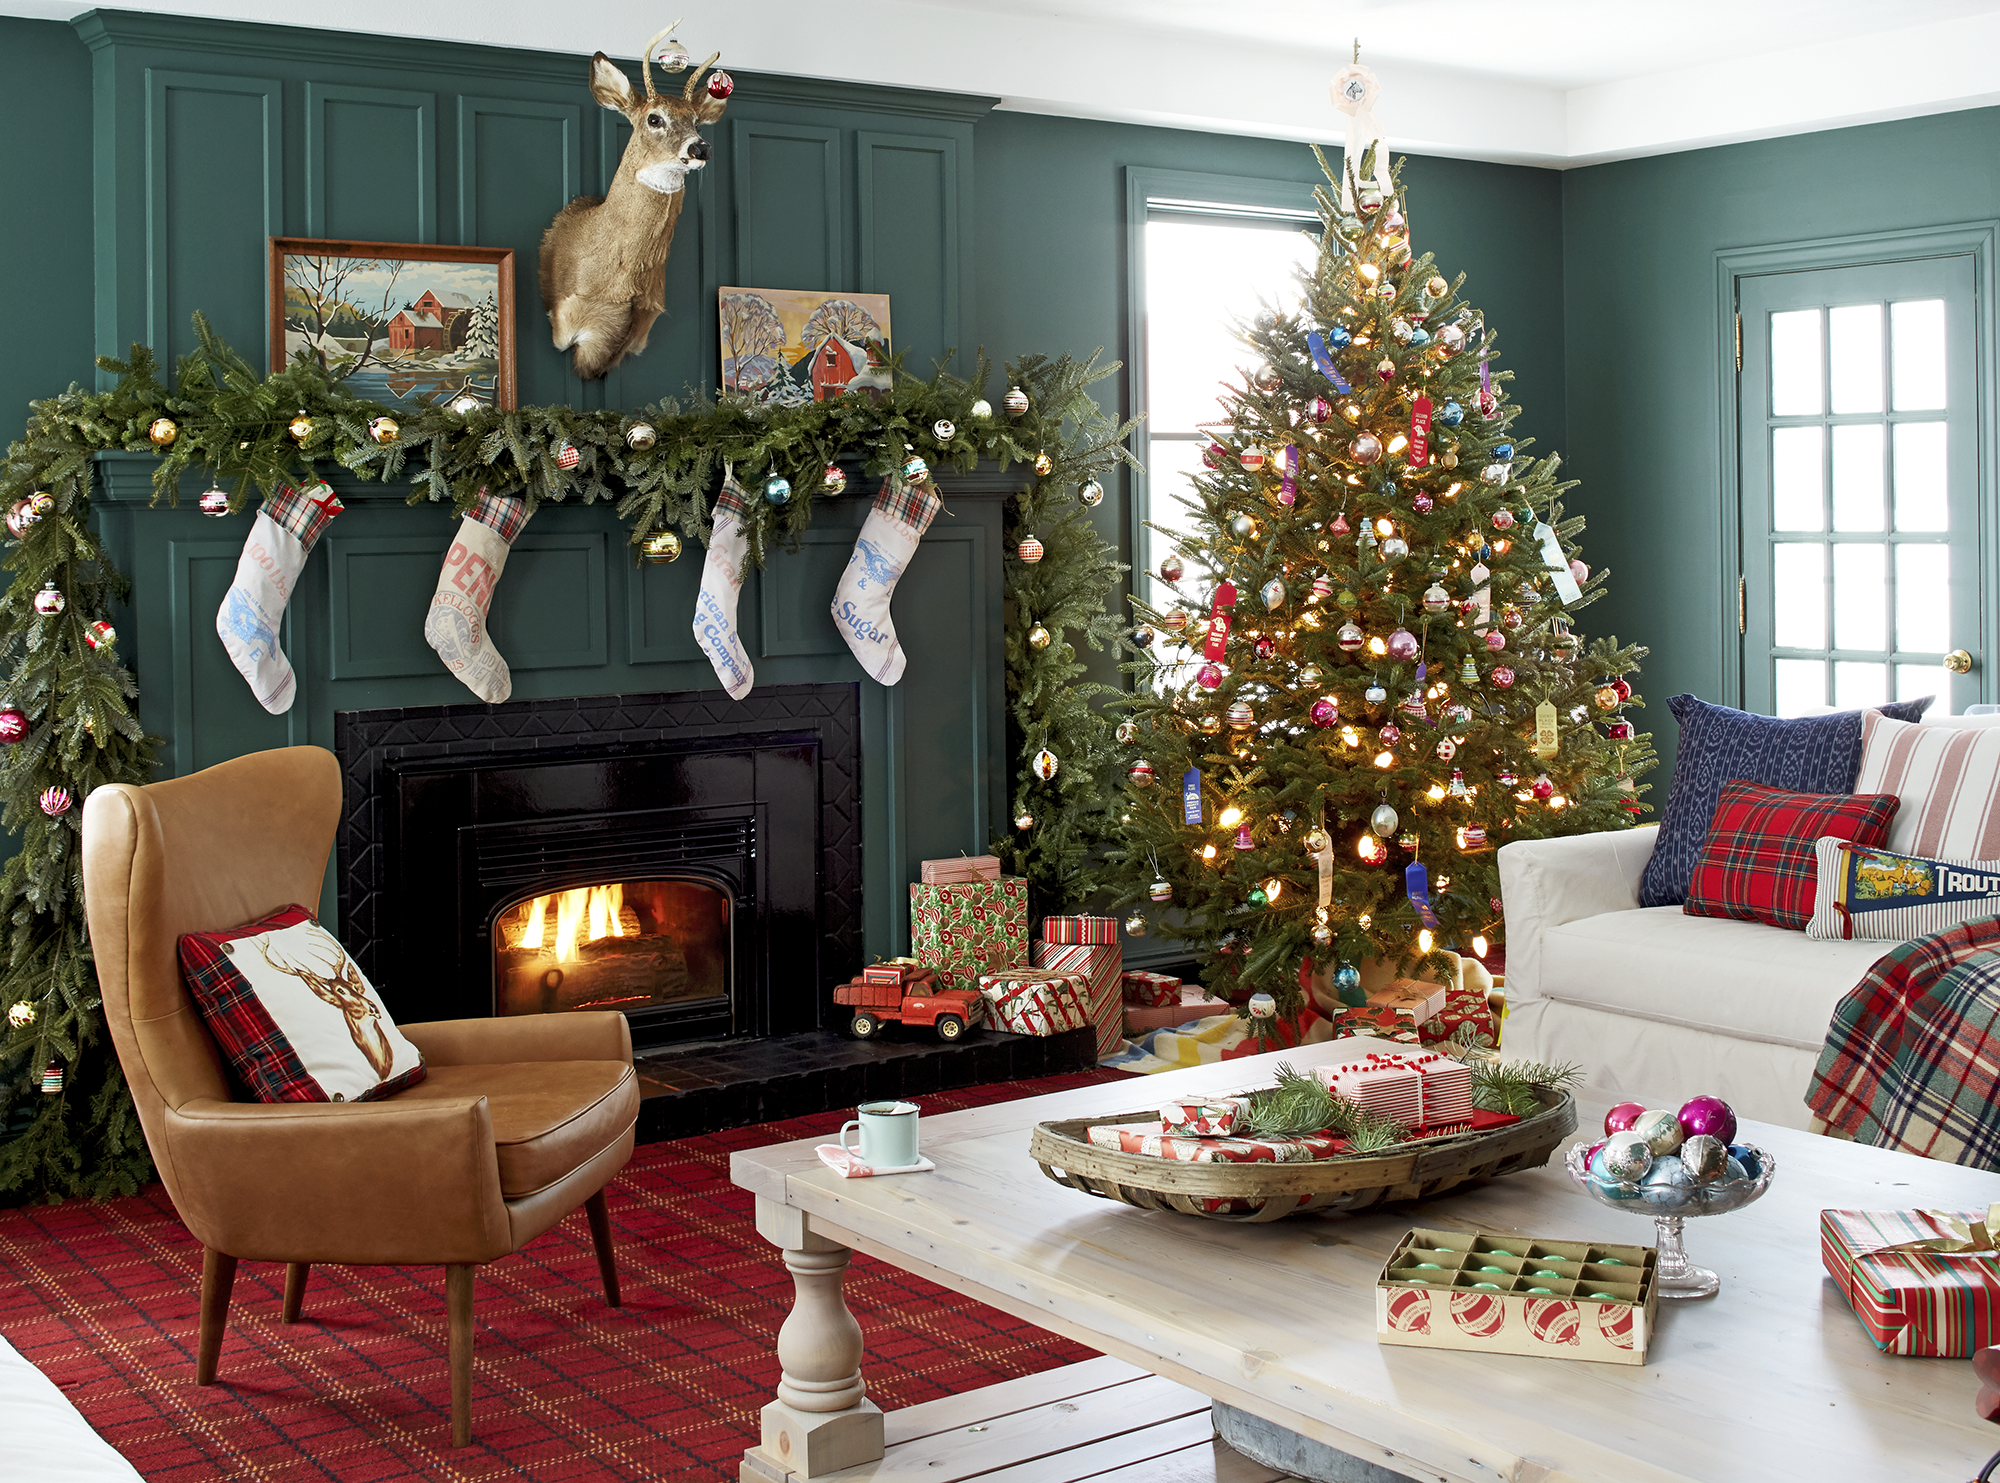 50 christmas mantel decorations ideas for holiday fireplace mantel decorating - How To Decorate A Fireplace For Christmas